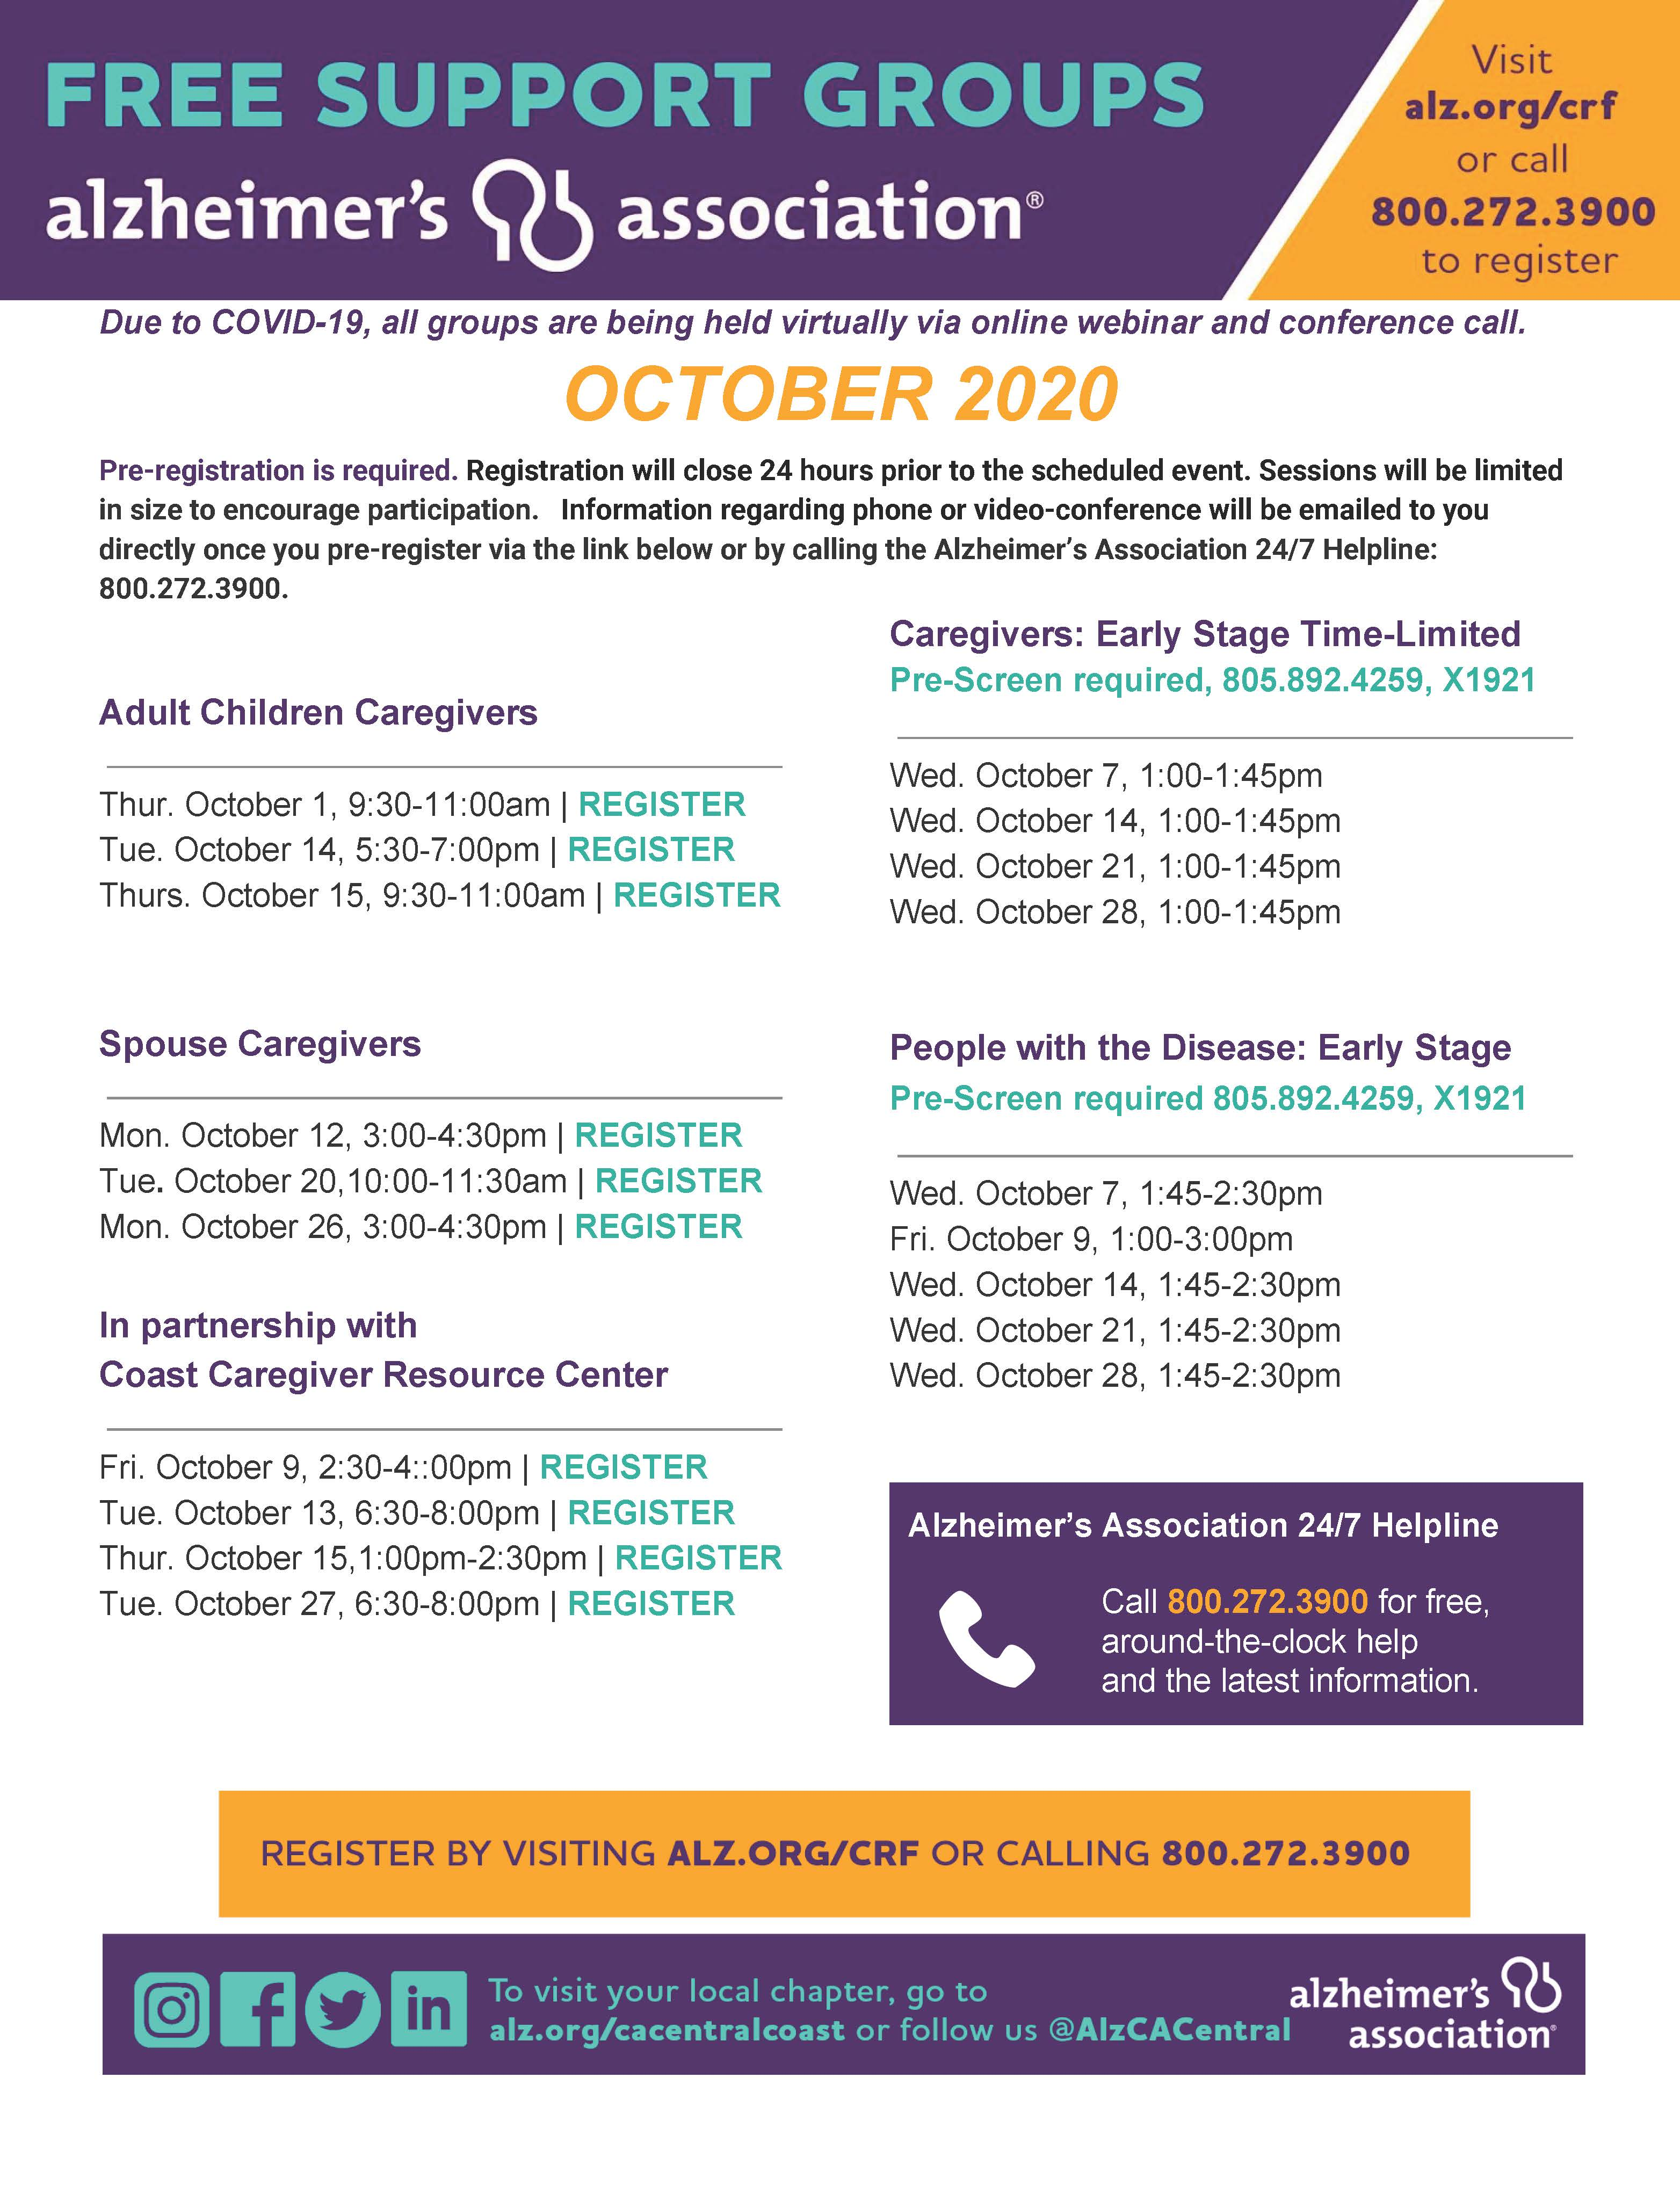 Alzheimer's Association Free Support Group Classes